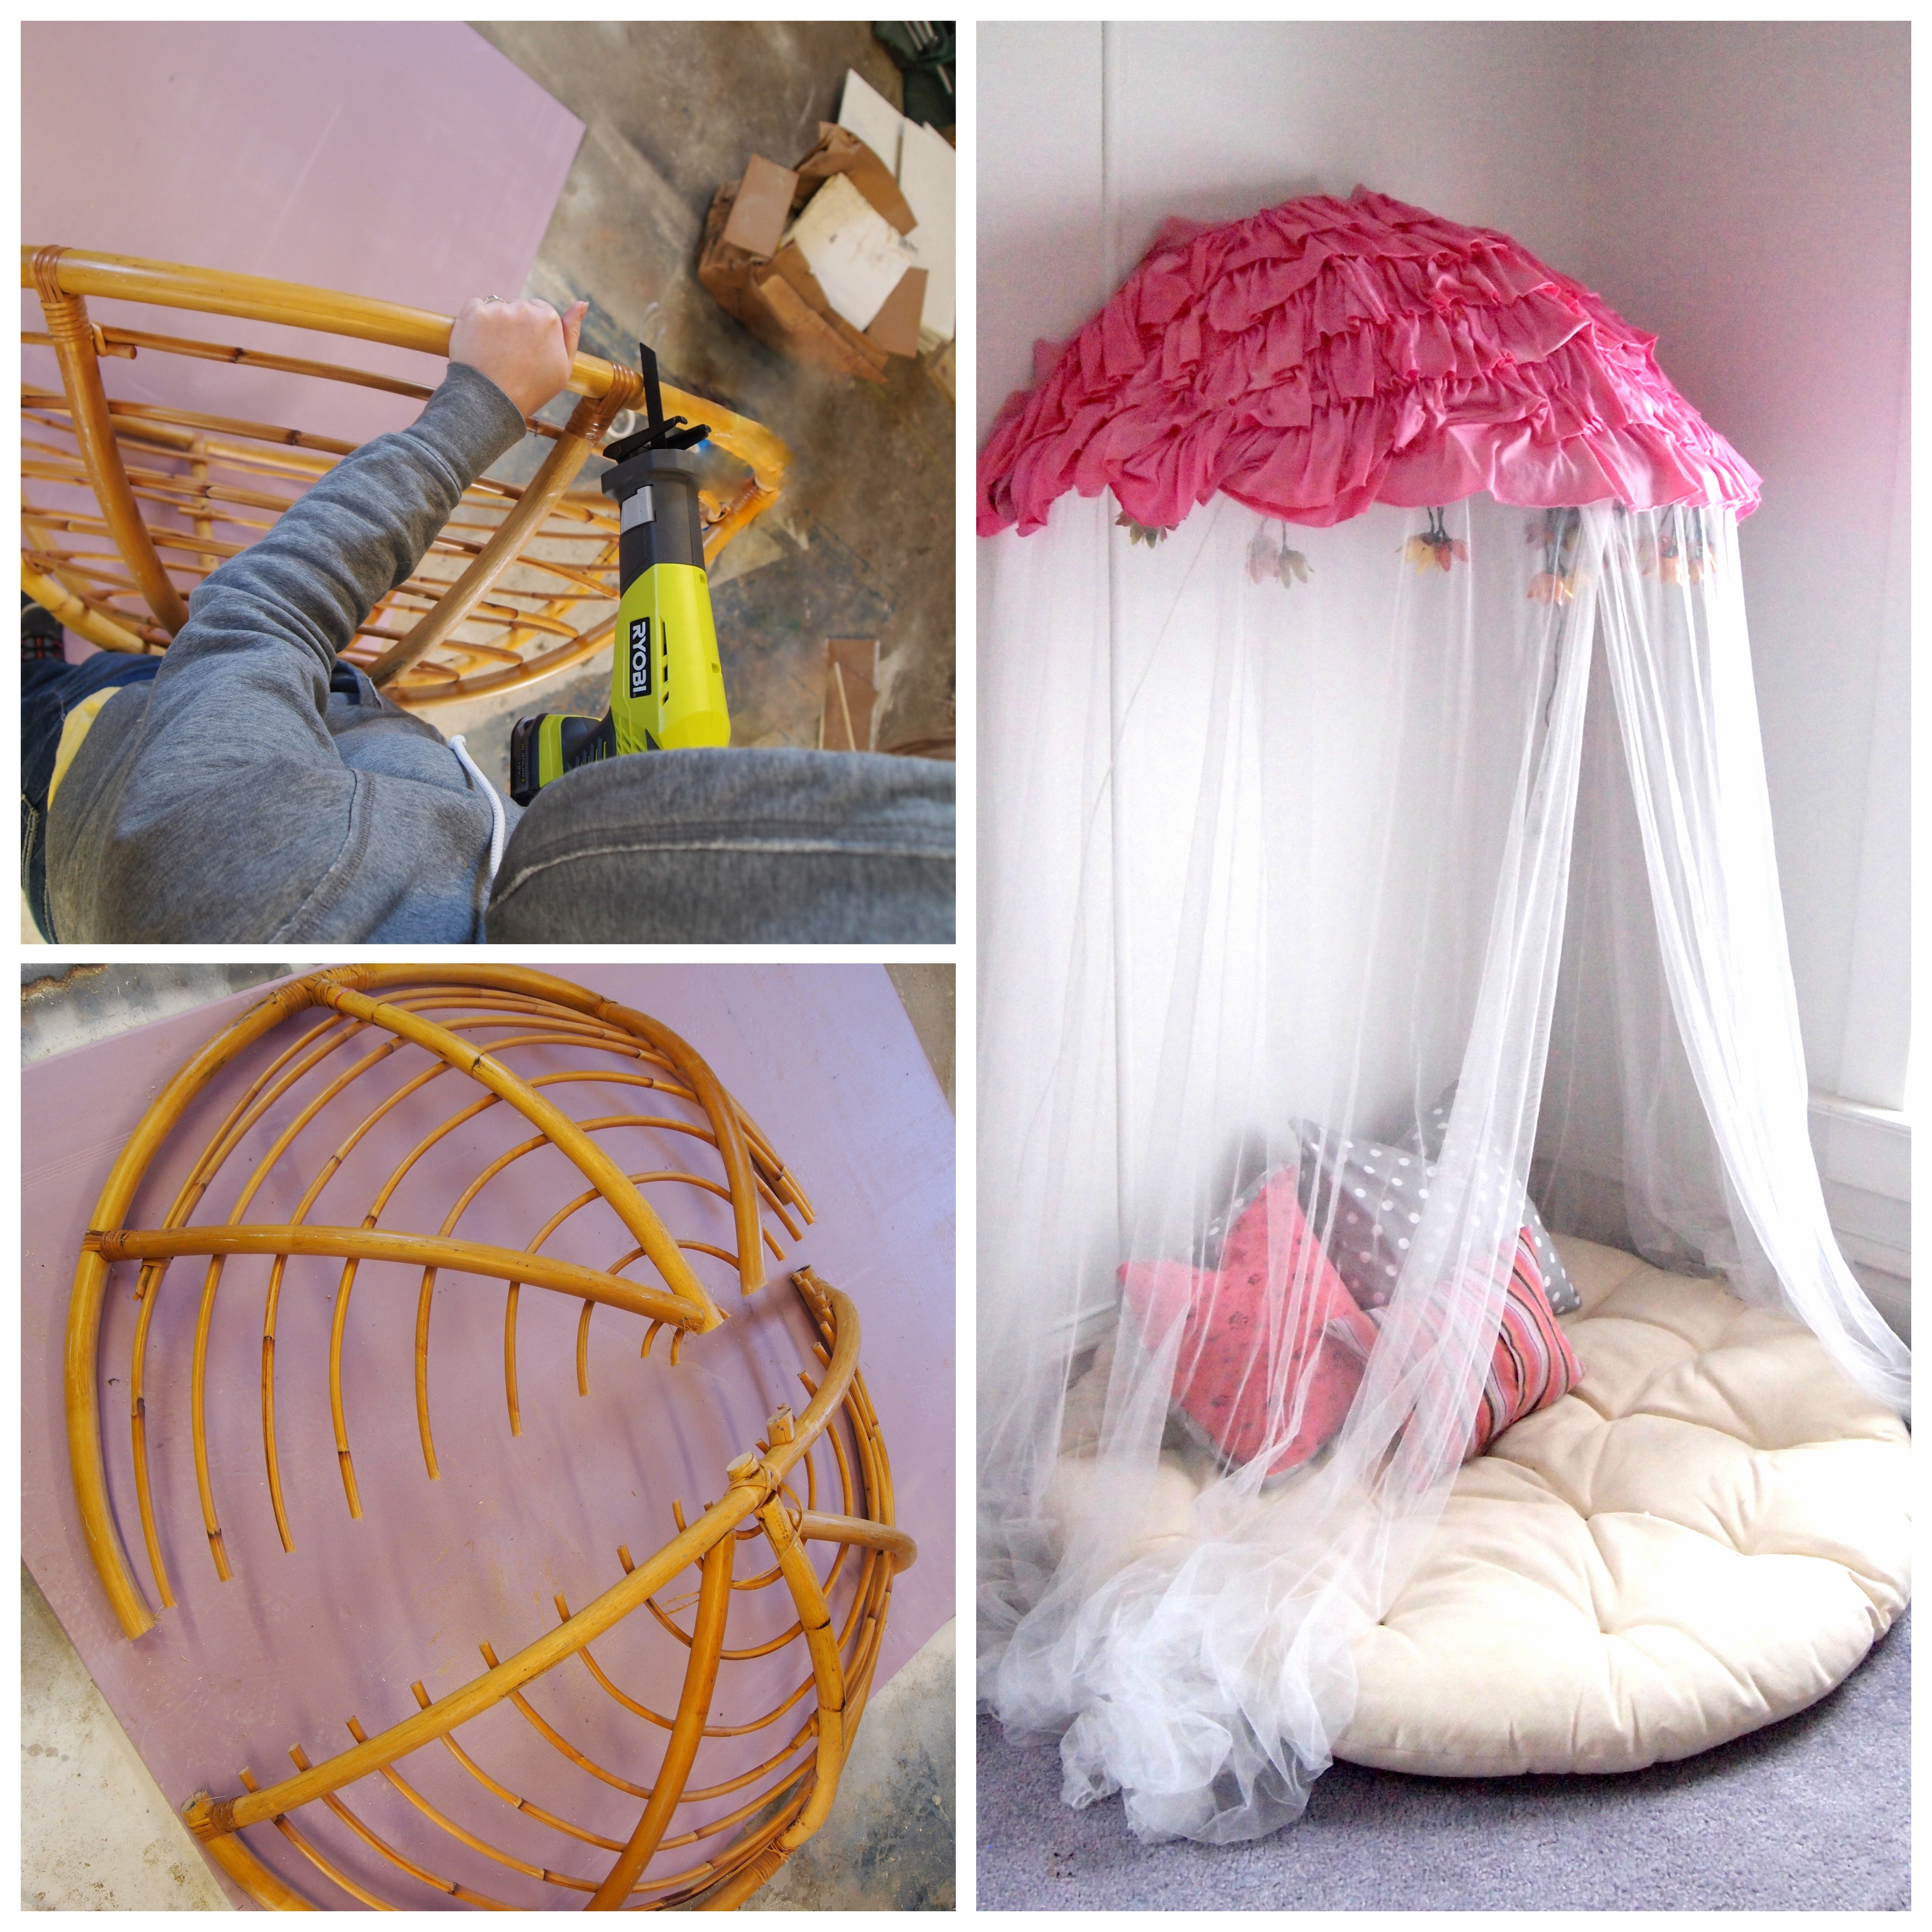 Old Papasan turned into a Papasan Canopy Reading Nook!